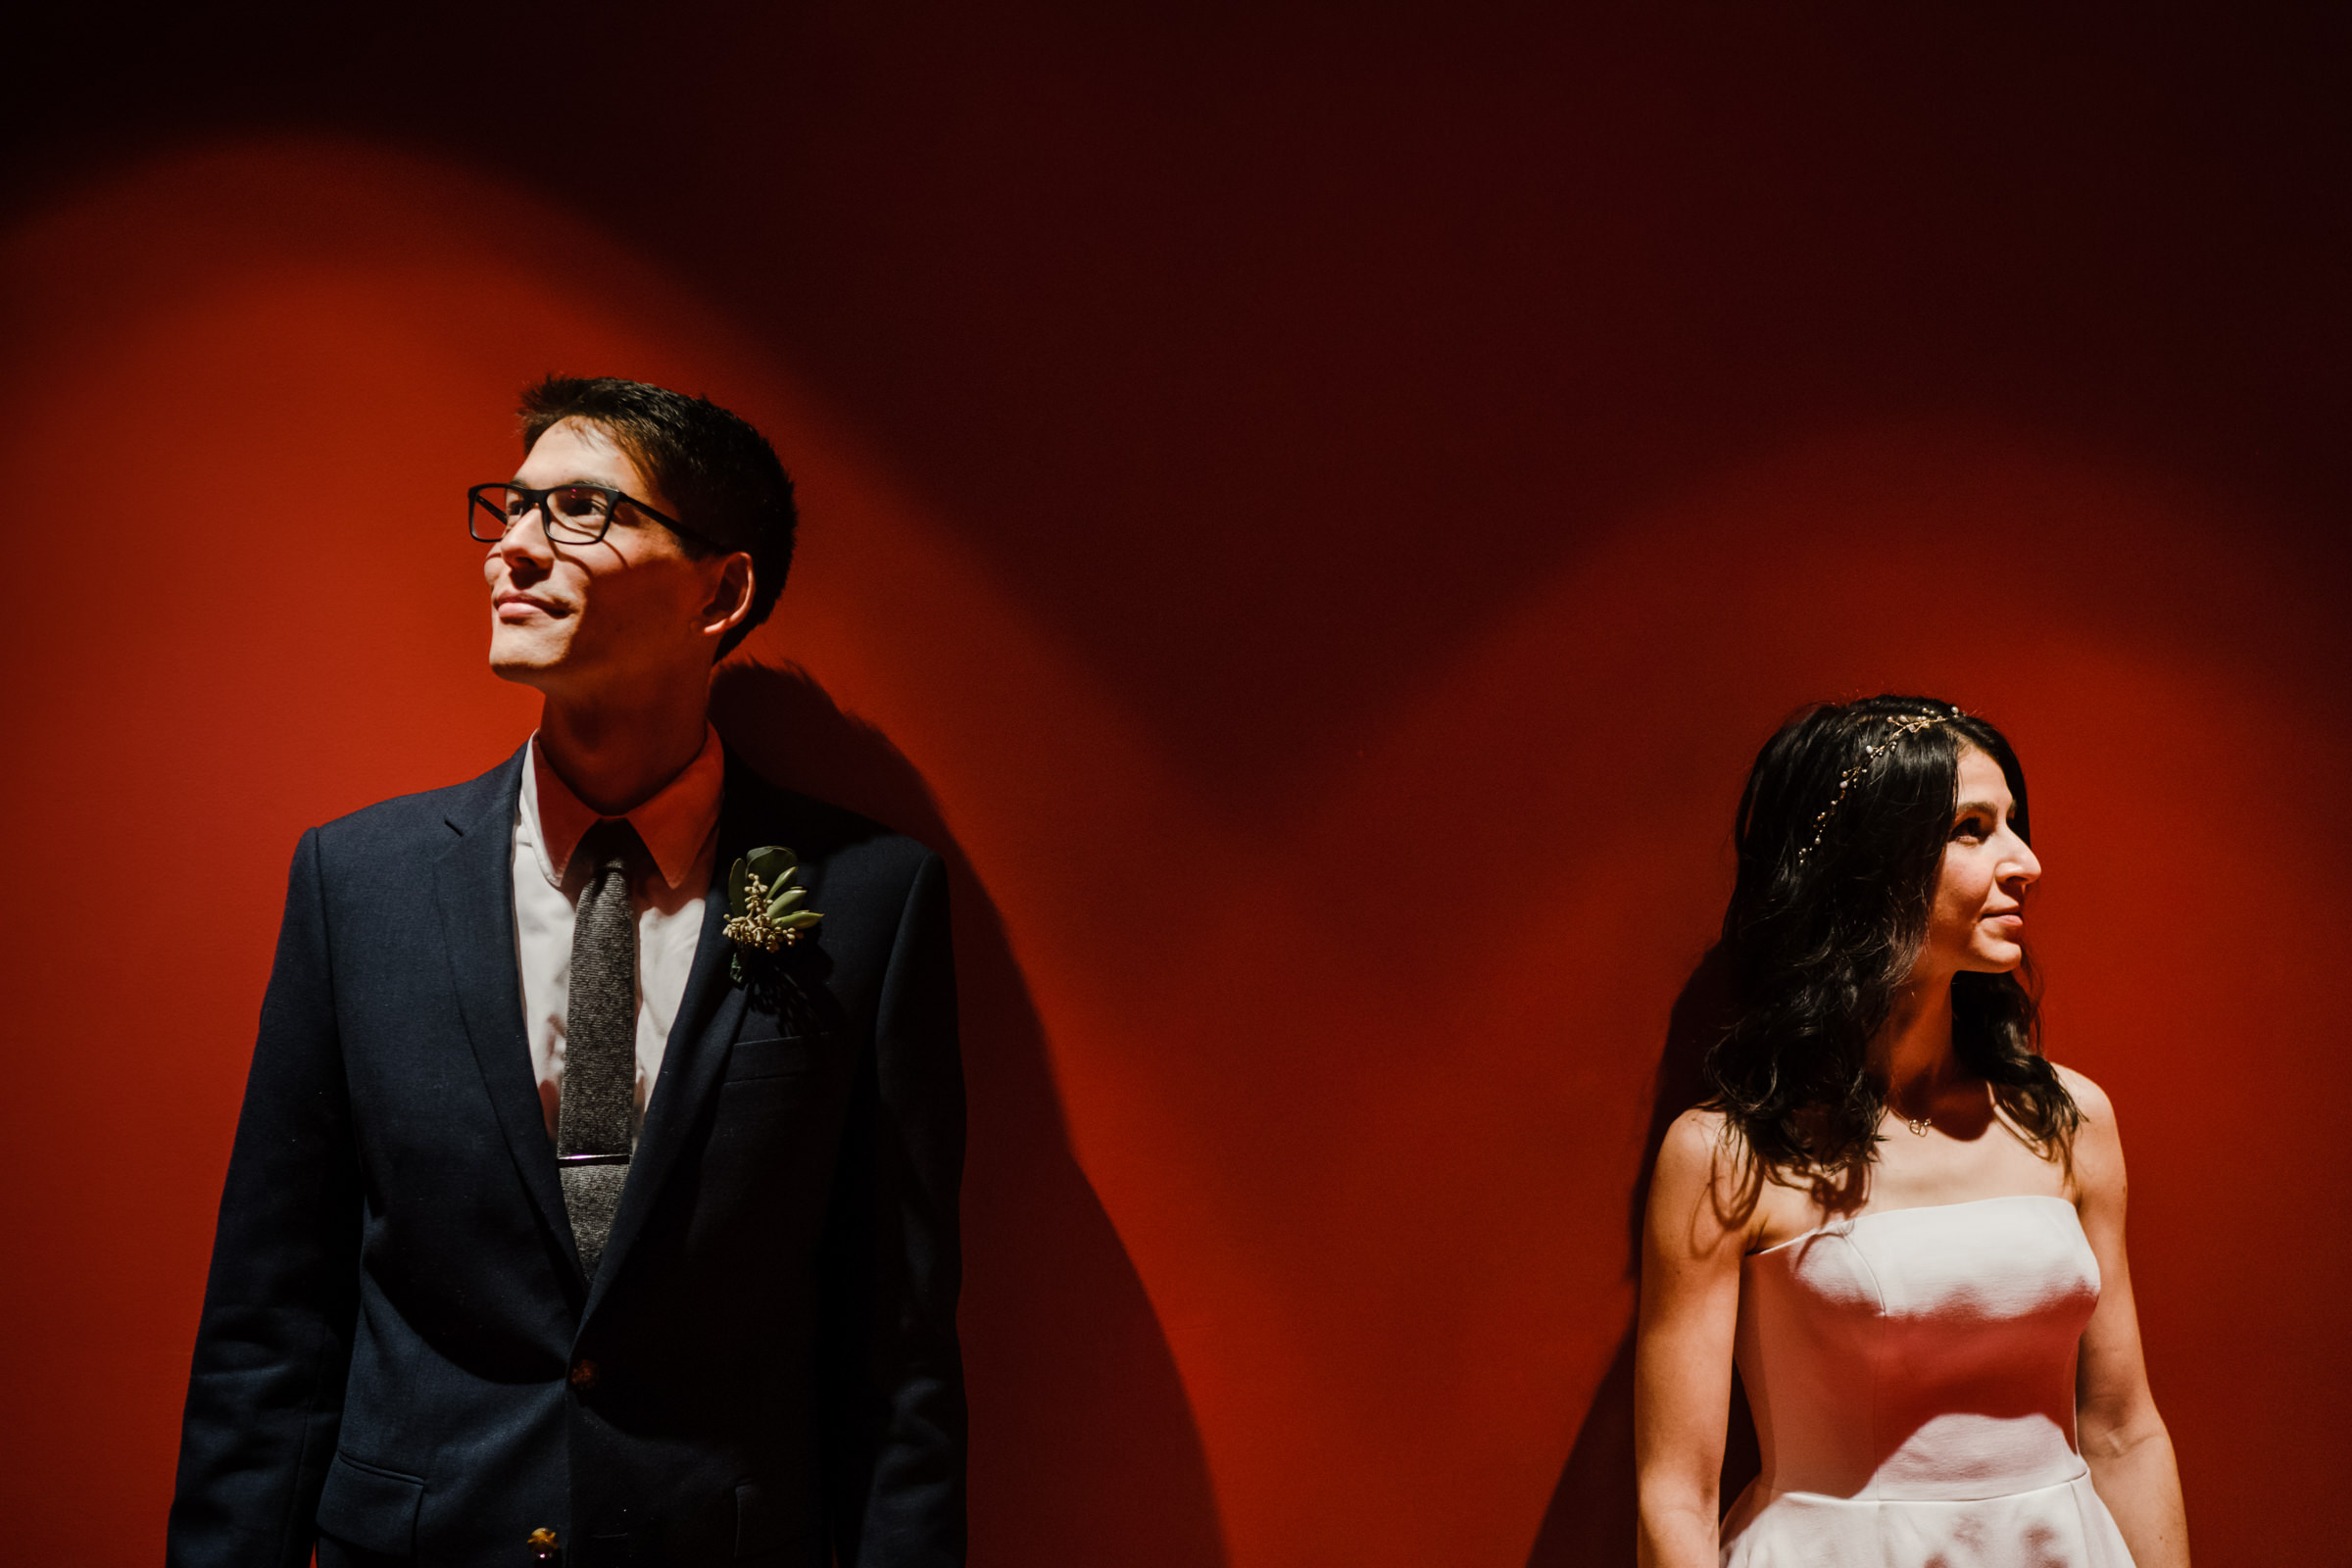 Bride and groom against red wall - photo by Sasha Reiko Photography